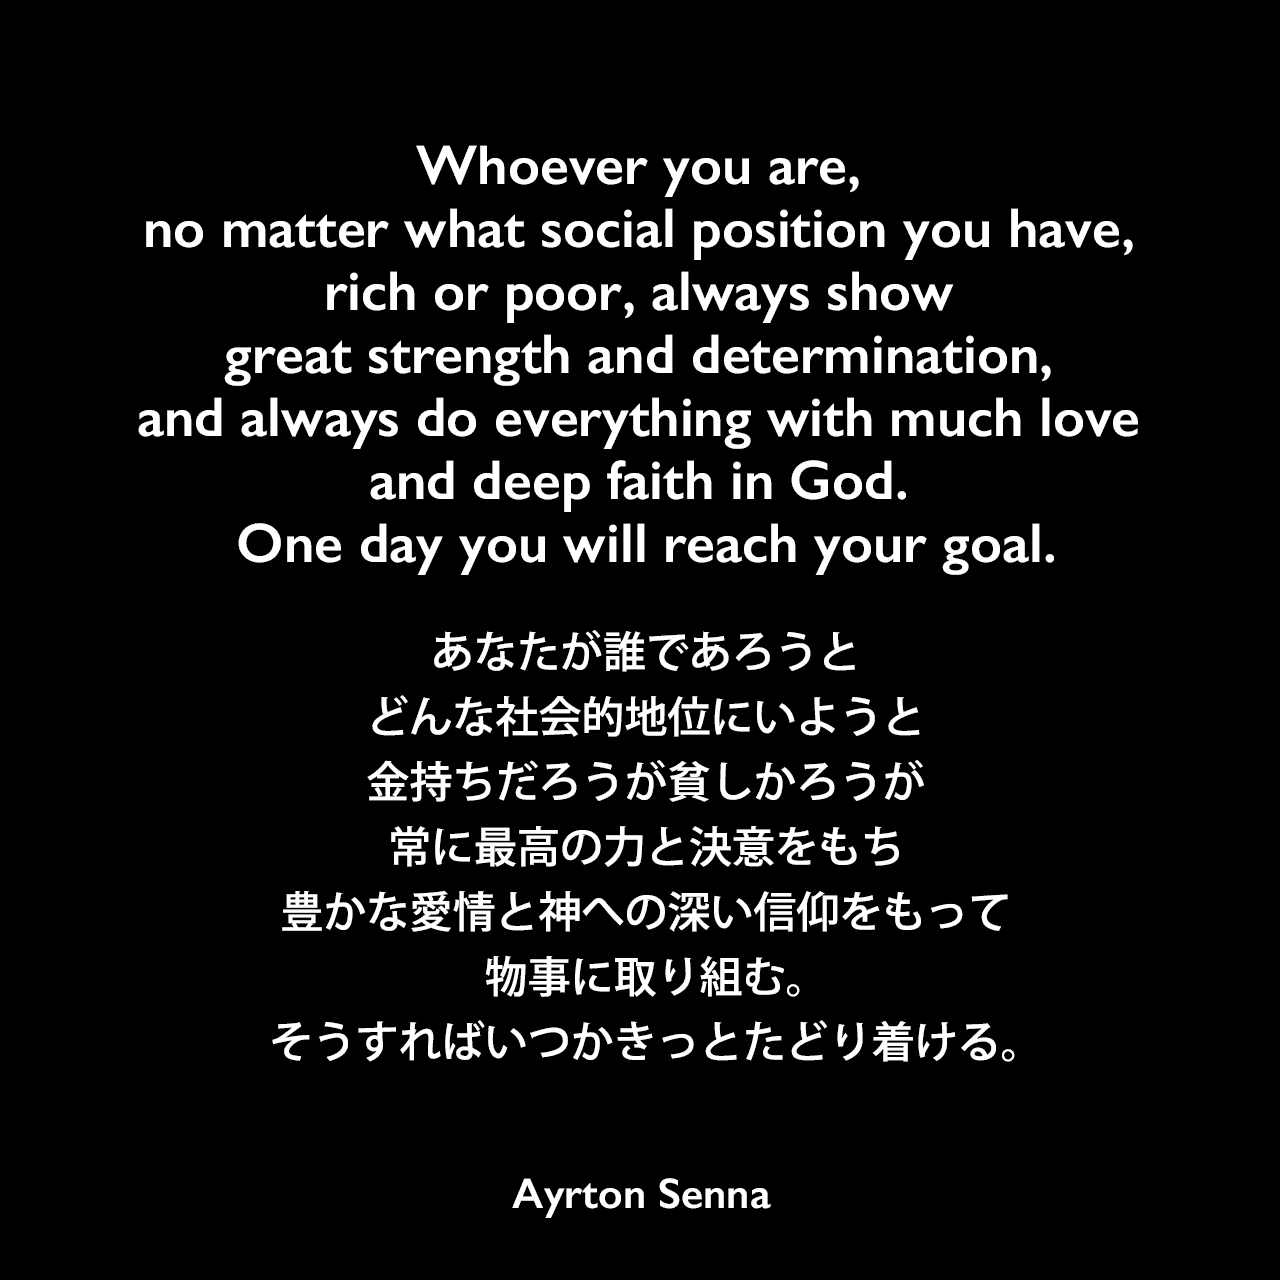 Whoever you are, no matter what social position you have, rich or poor, always show great strength and determination, and always do everything with much love and deep faith in God. One day you will reach your goal.あなたが誰であろうと、どんな社会的地位にいようと、金持ちだろうが貧しかろうが、常に最高の力と決意をもち、豊かな愛情と神への深い信仰をもって物事に取り組む。そうすればいつかきっとたどり着ける。